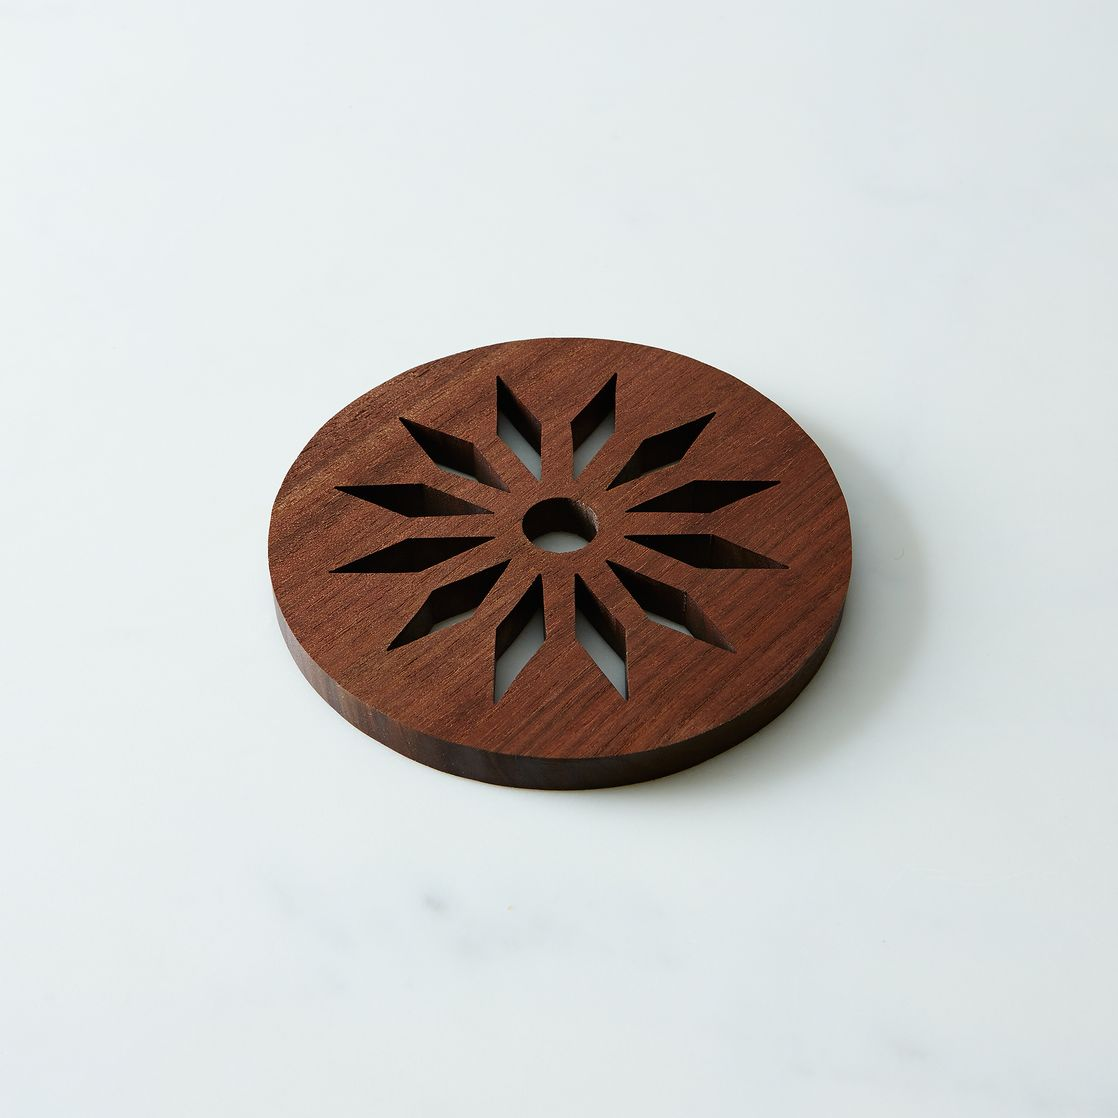 midcentury modern star trivet on food - midcentury modern star trivet